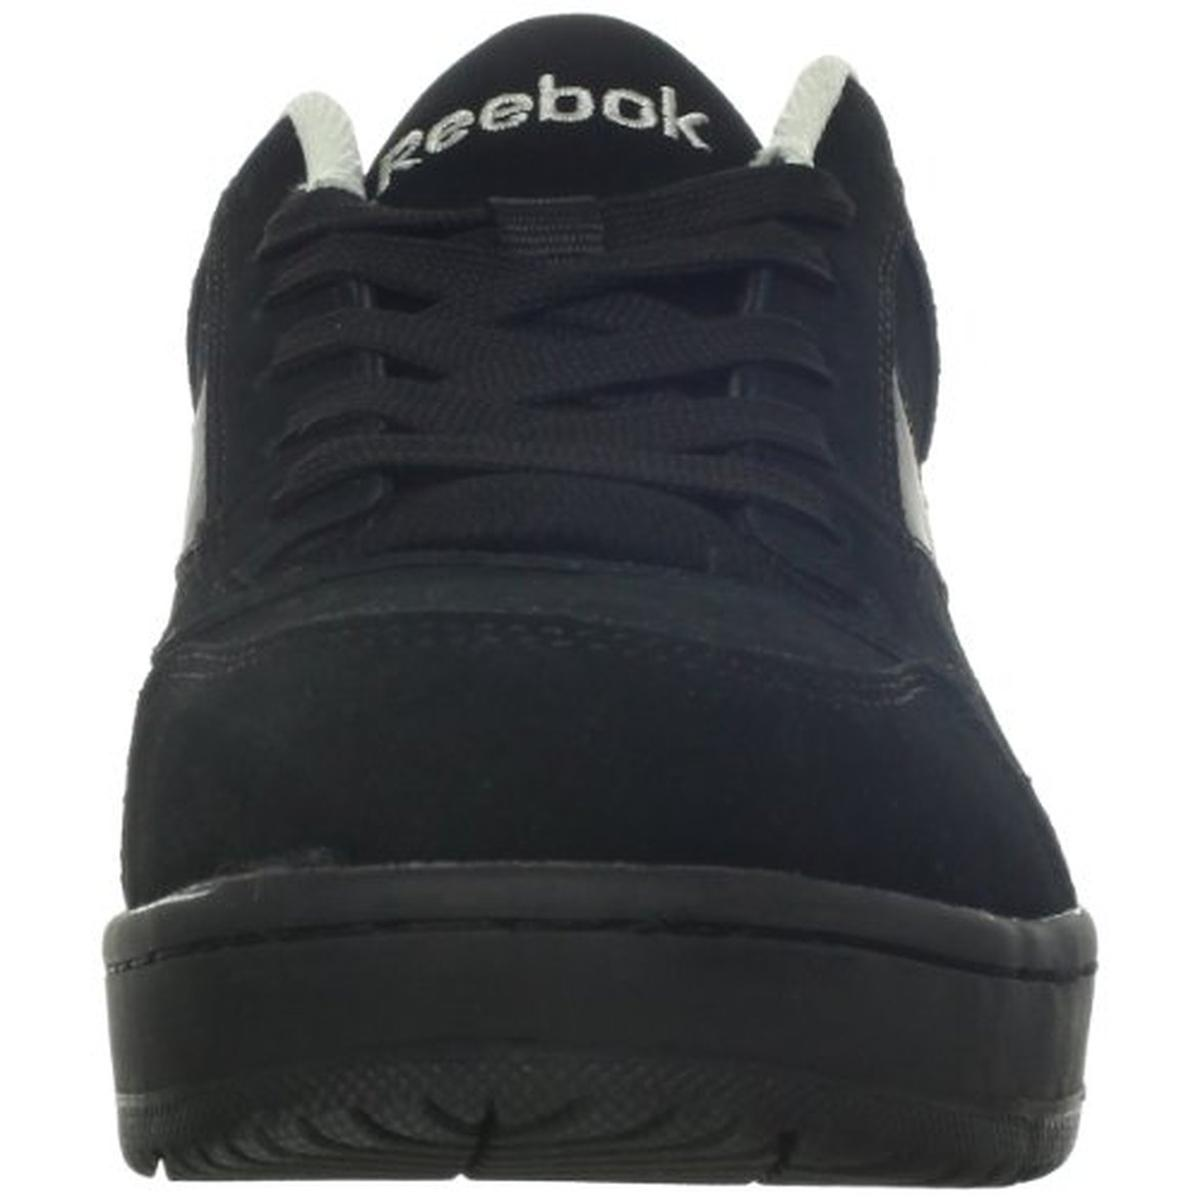 Reebok Rb1910 The Skater Mens Size 12 Black